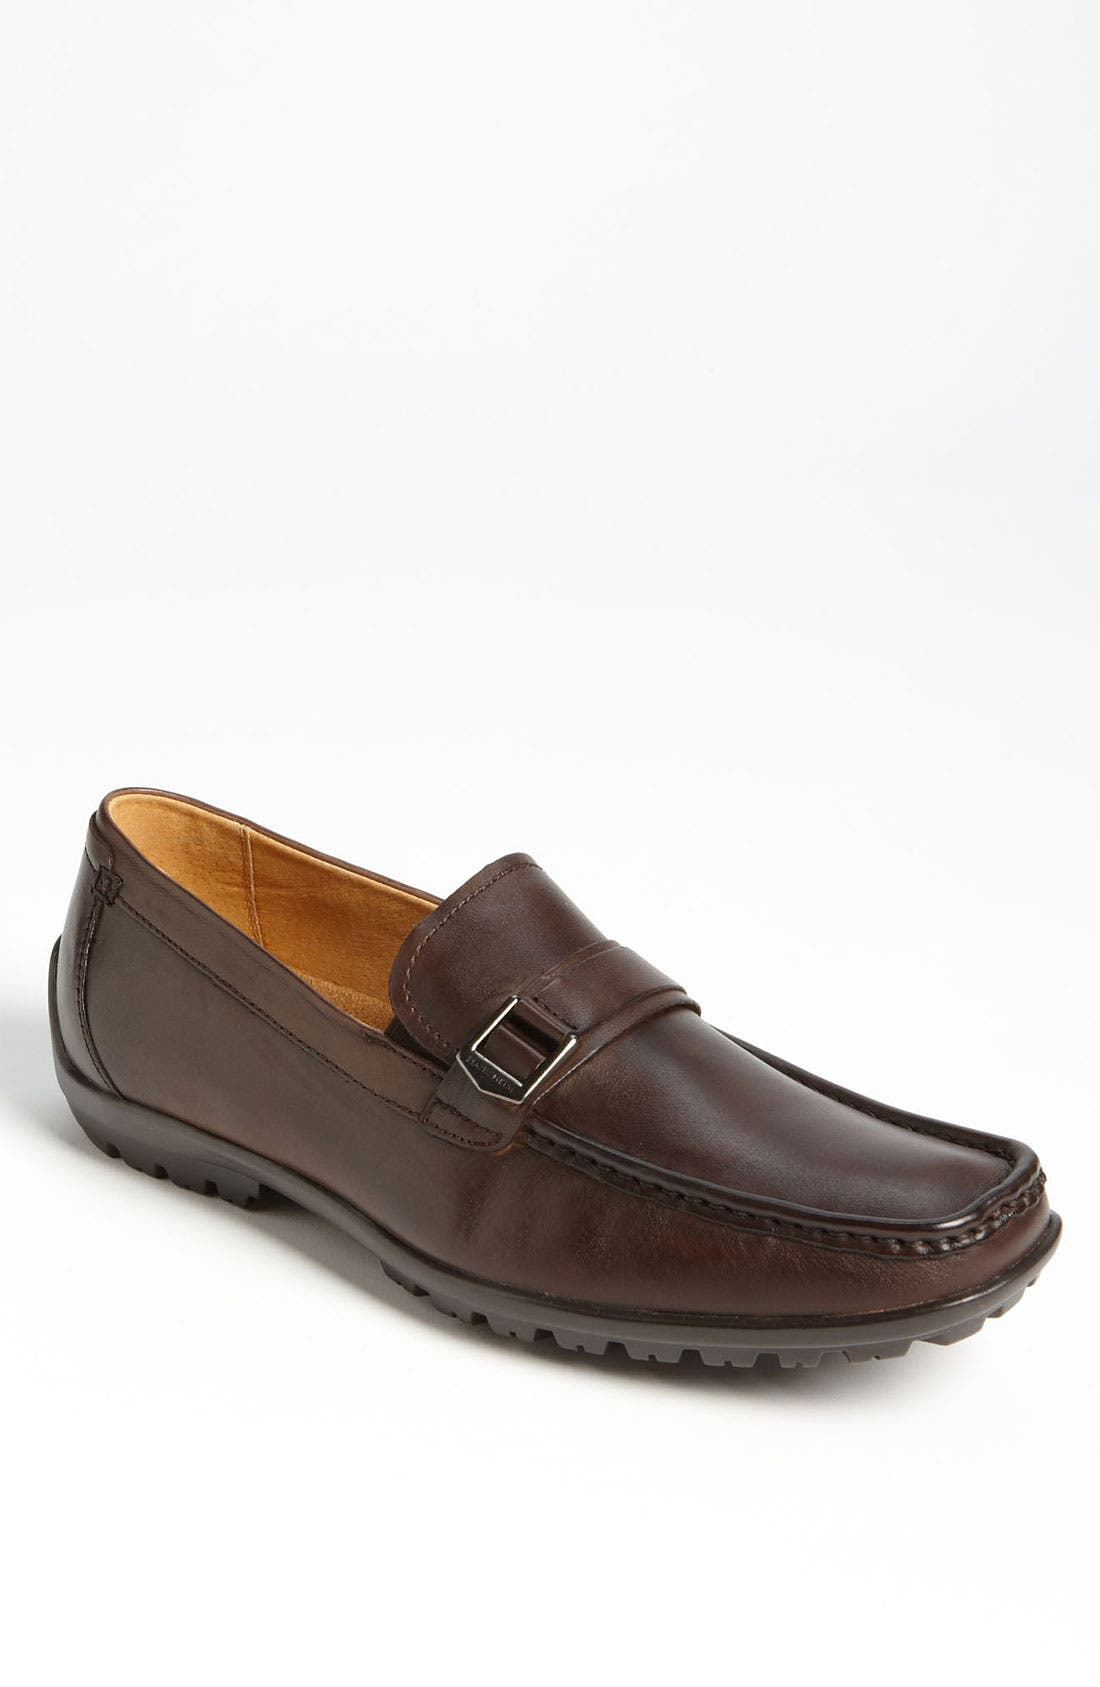 Main Image - Florsheim 'Nowles' Loafer